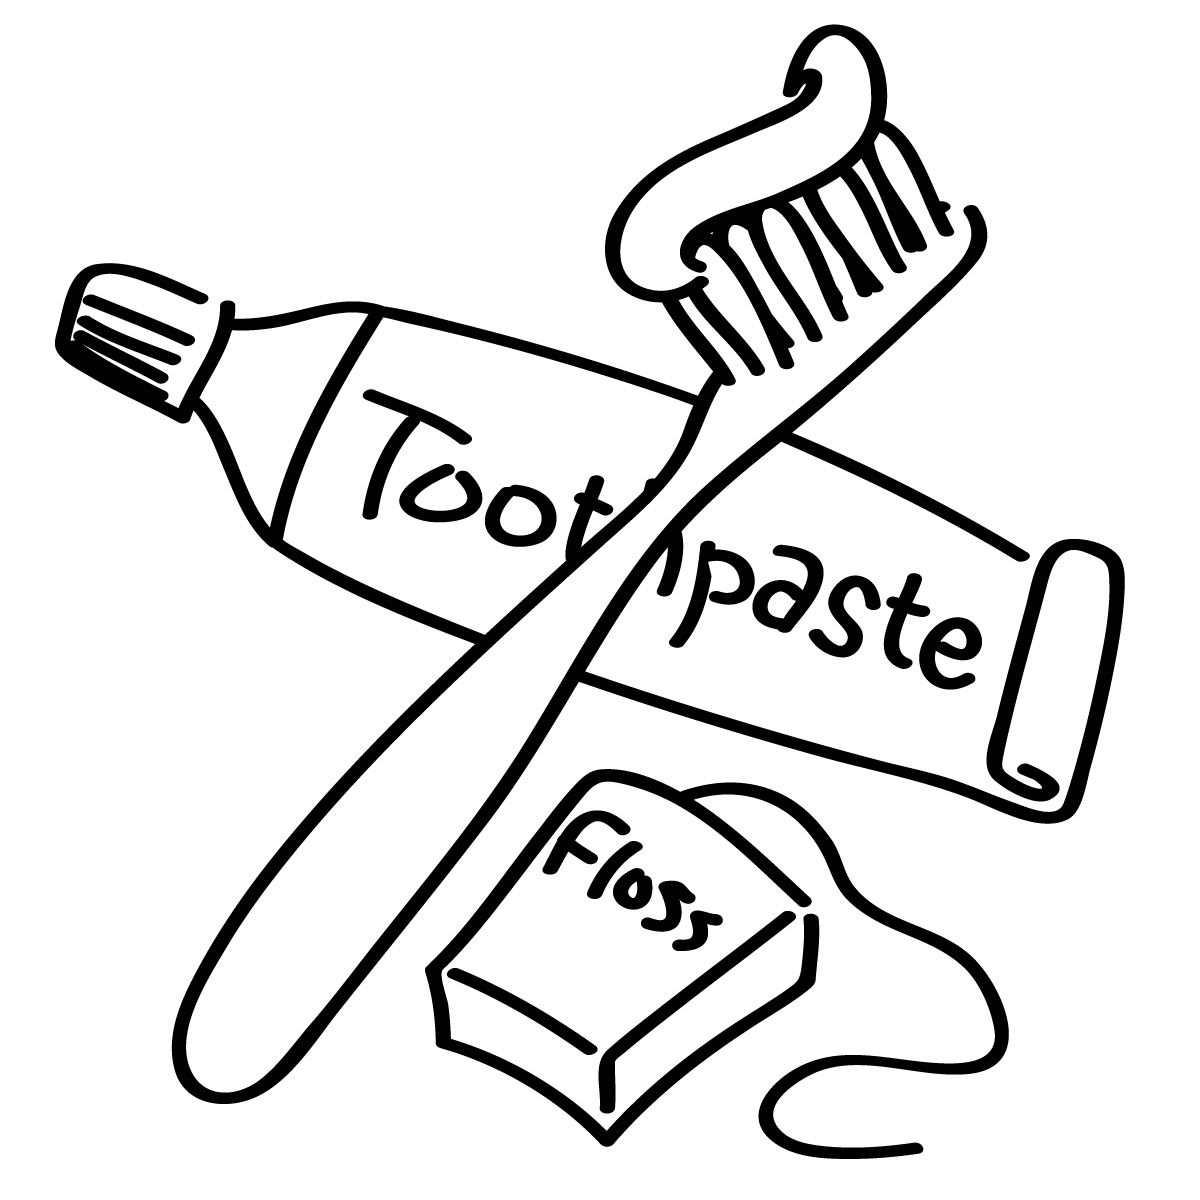 Toothbrush Coloring Page For 2019 Http Www Wallpaperartdesignhd Us Toothbrush Coloring Page For 2019 48046 Dental Hygiene Dental Reviews Hygiene